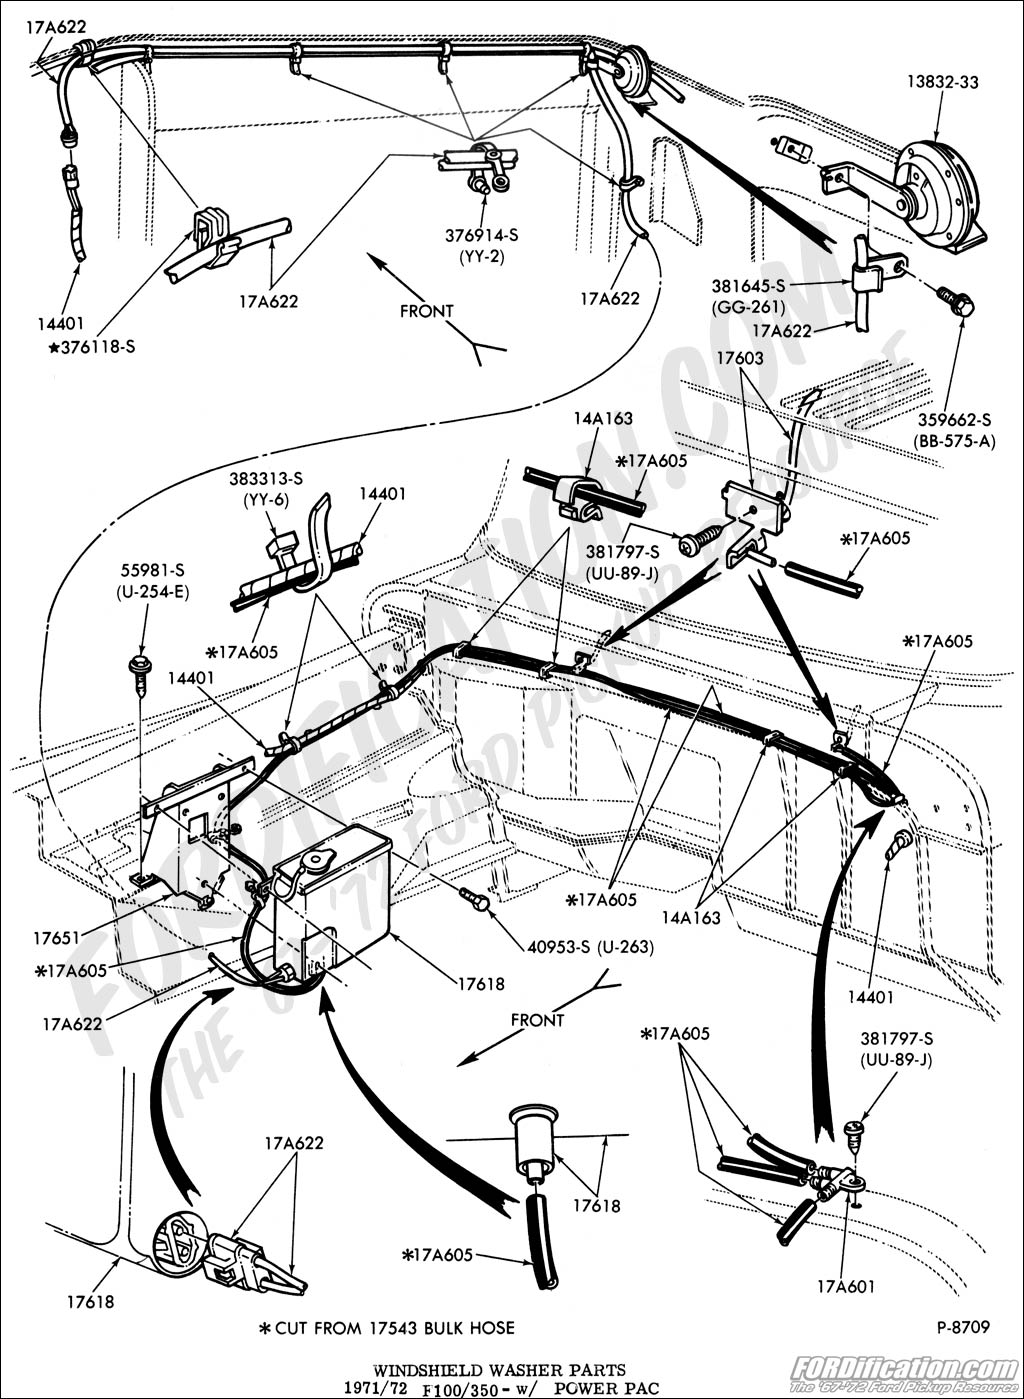 2006 Ford Explorer Fuse Box Wiring Library 02 Diagram Truck Technical Drawings And Schematics Section I